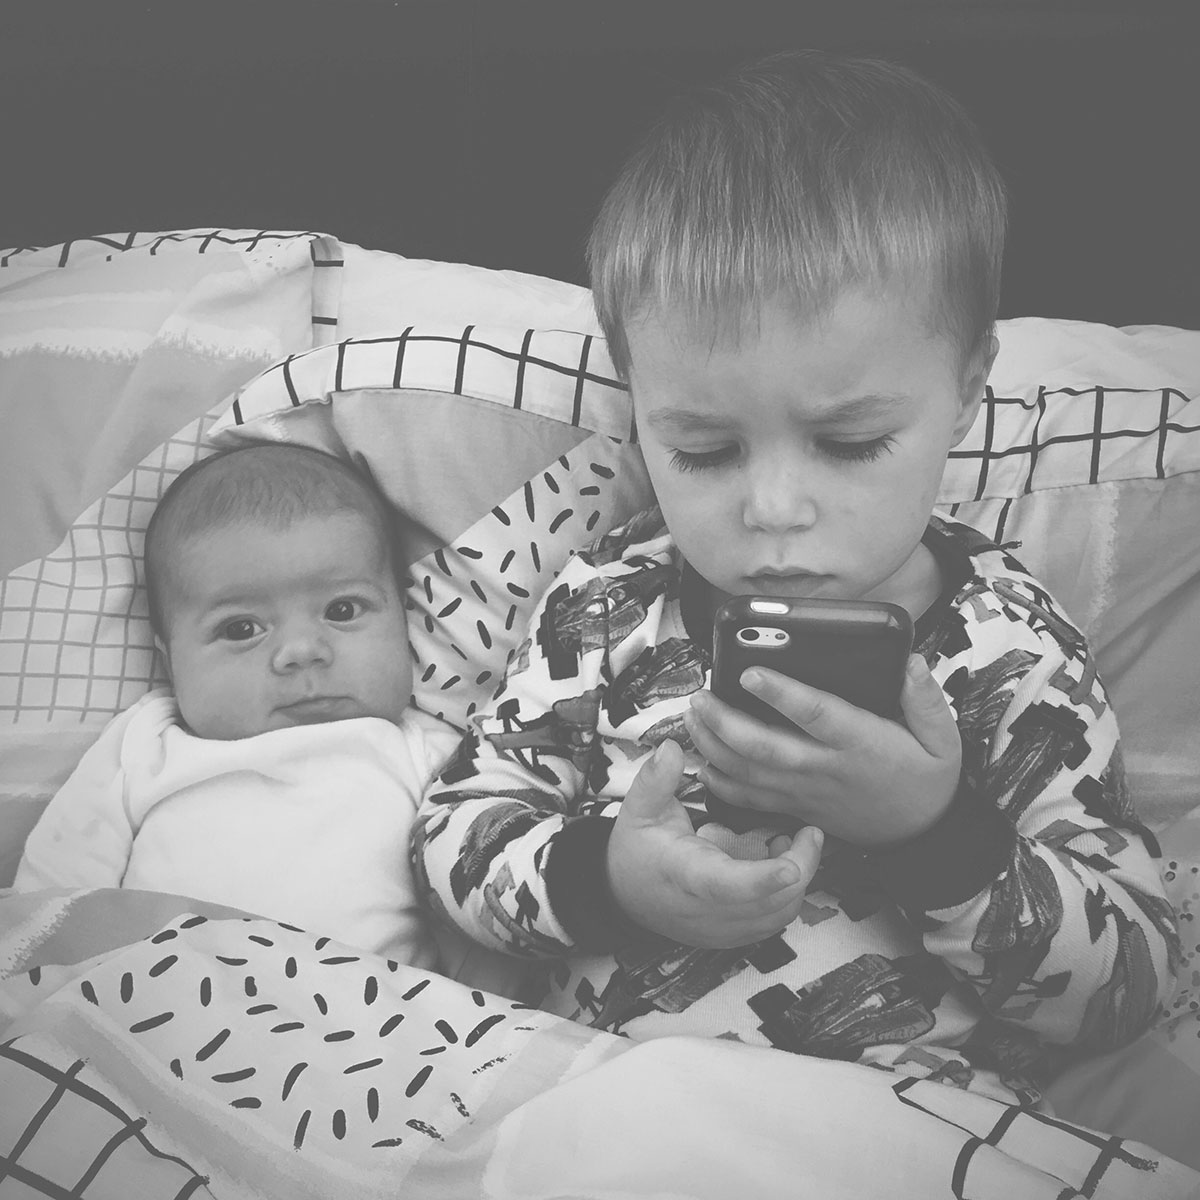 Baby Jesse Blue at 2 months old - Newborn in bed with his big brother having cuddles, watching youtube